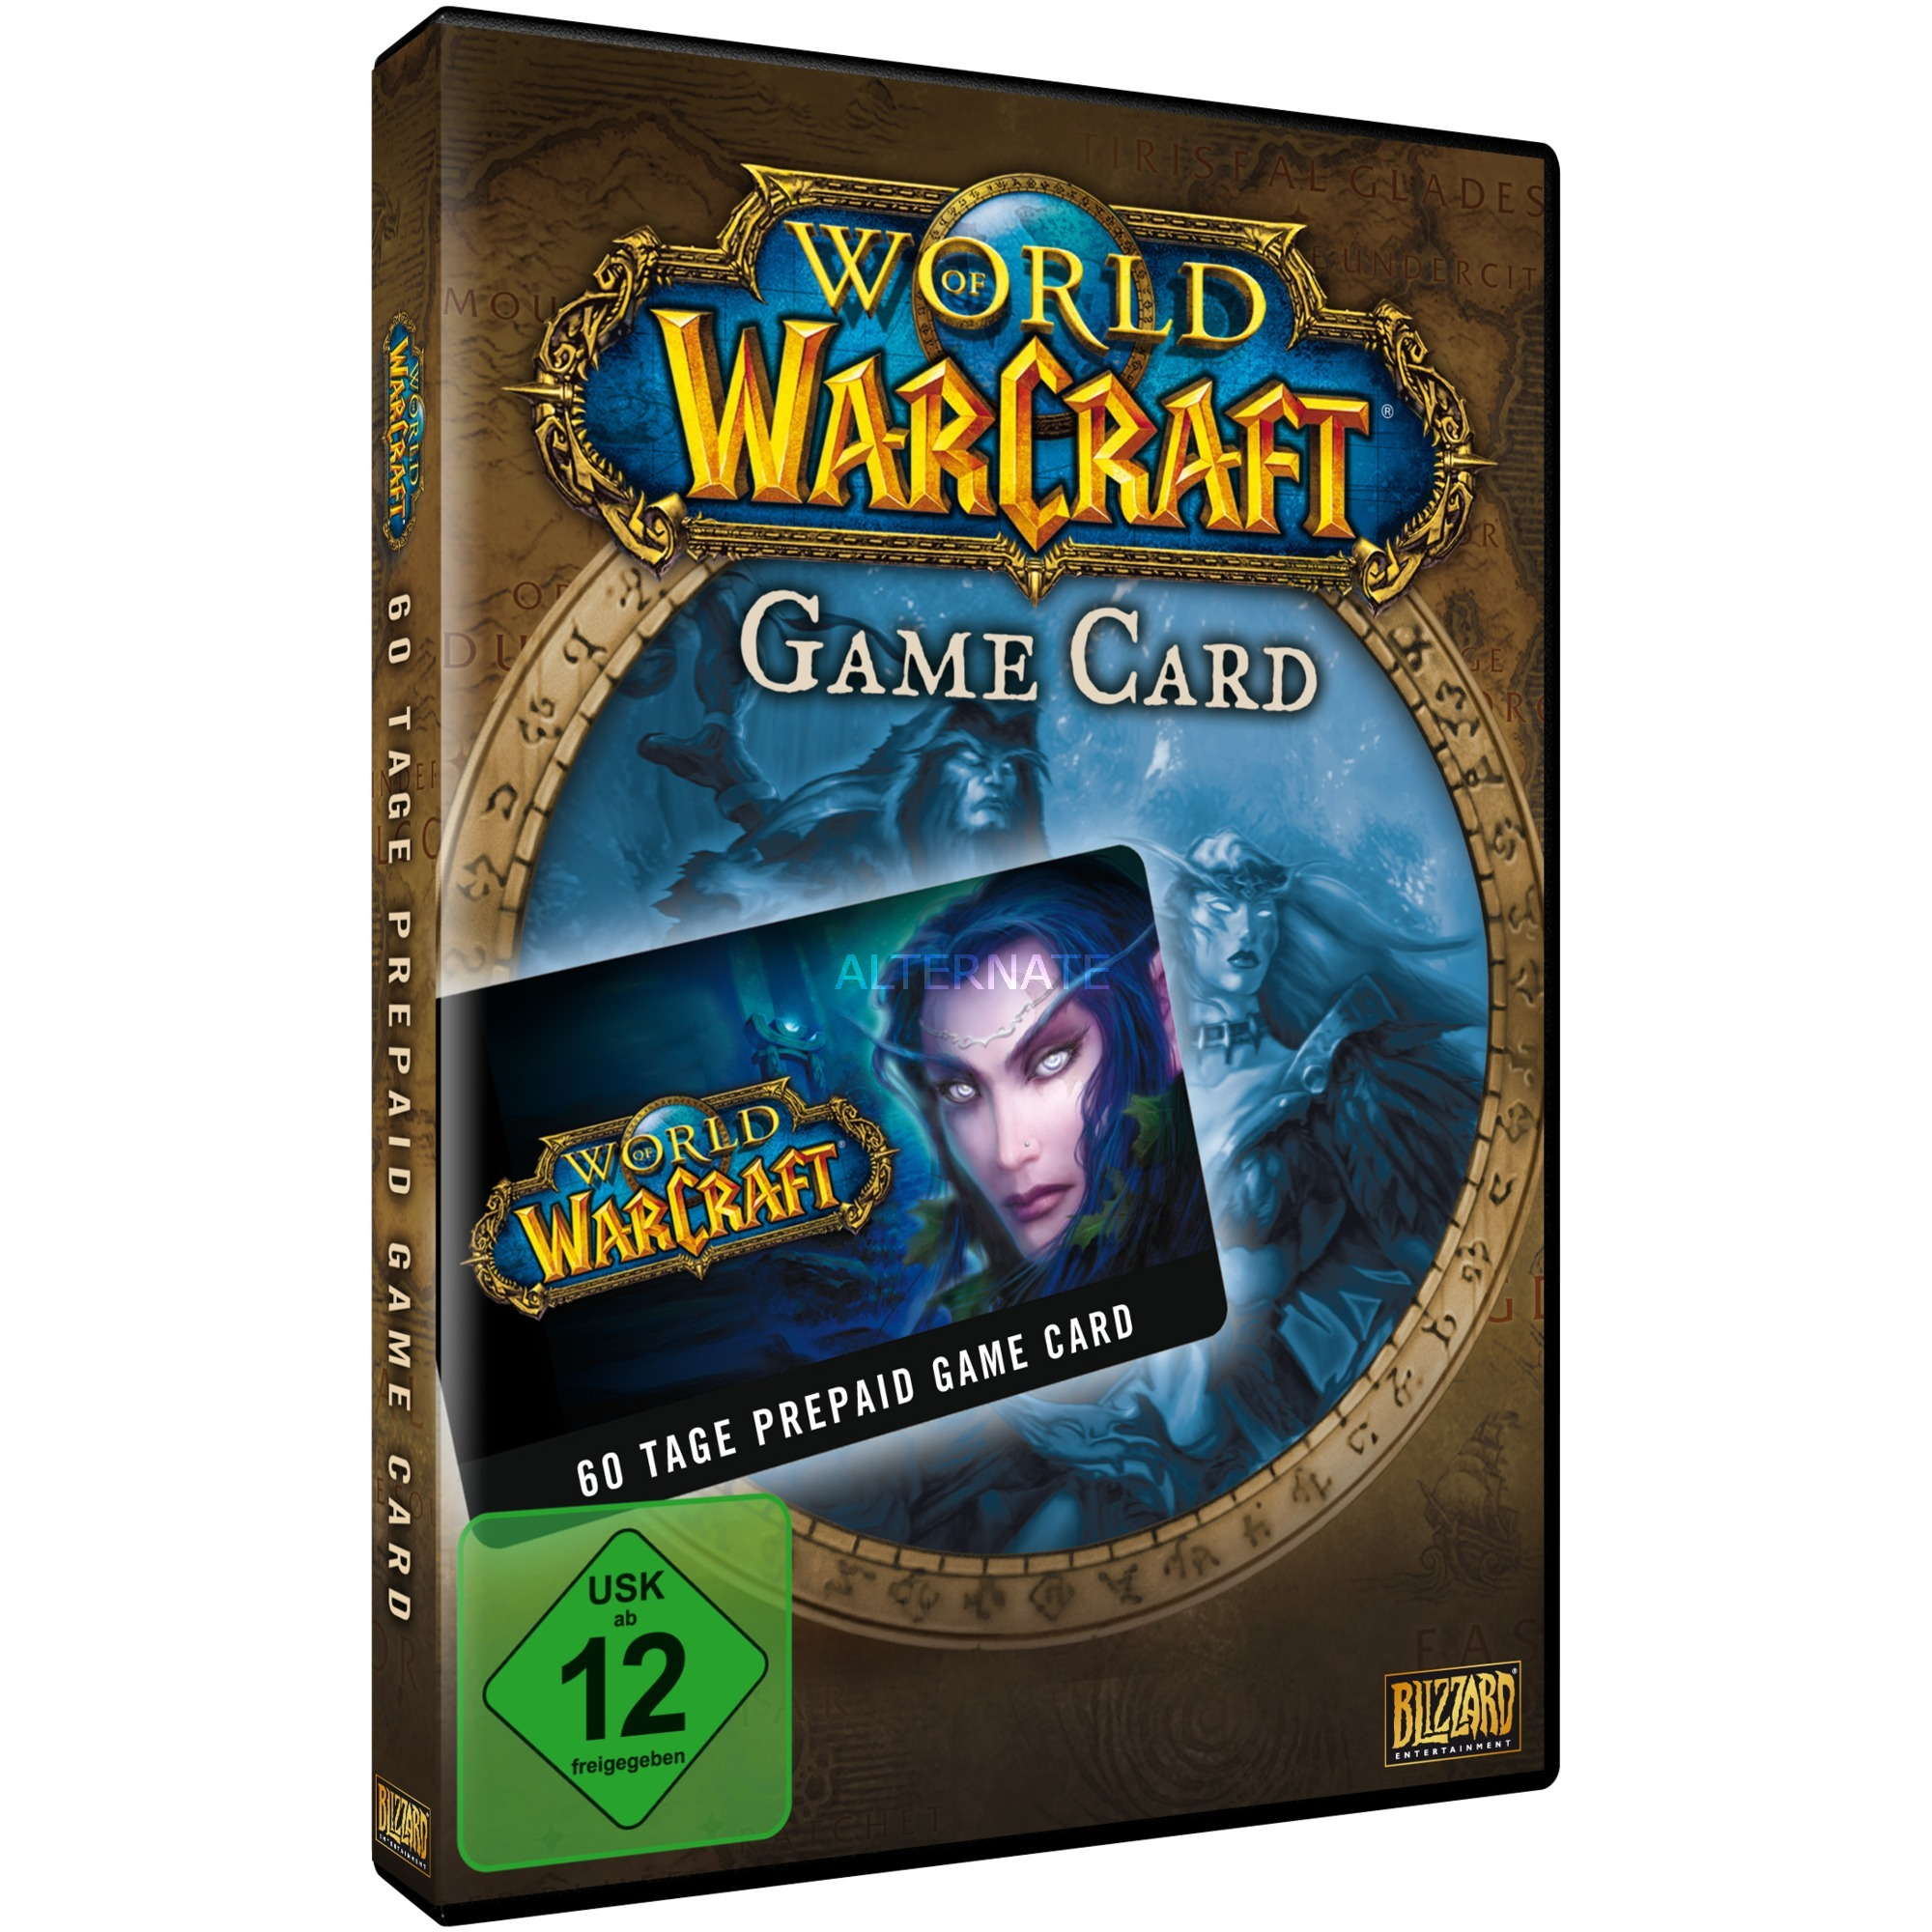 World of Warcraft 60 Day Pre-paid Game Card (PC/Mac) PC vídeo juego, Tarjeta de juego